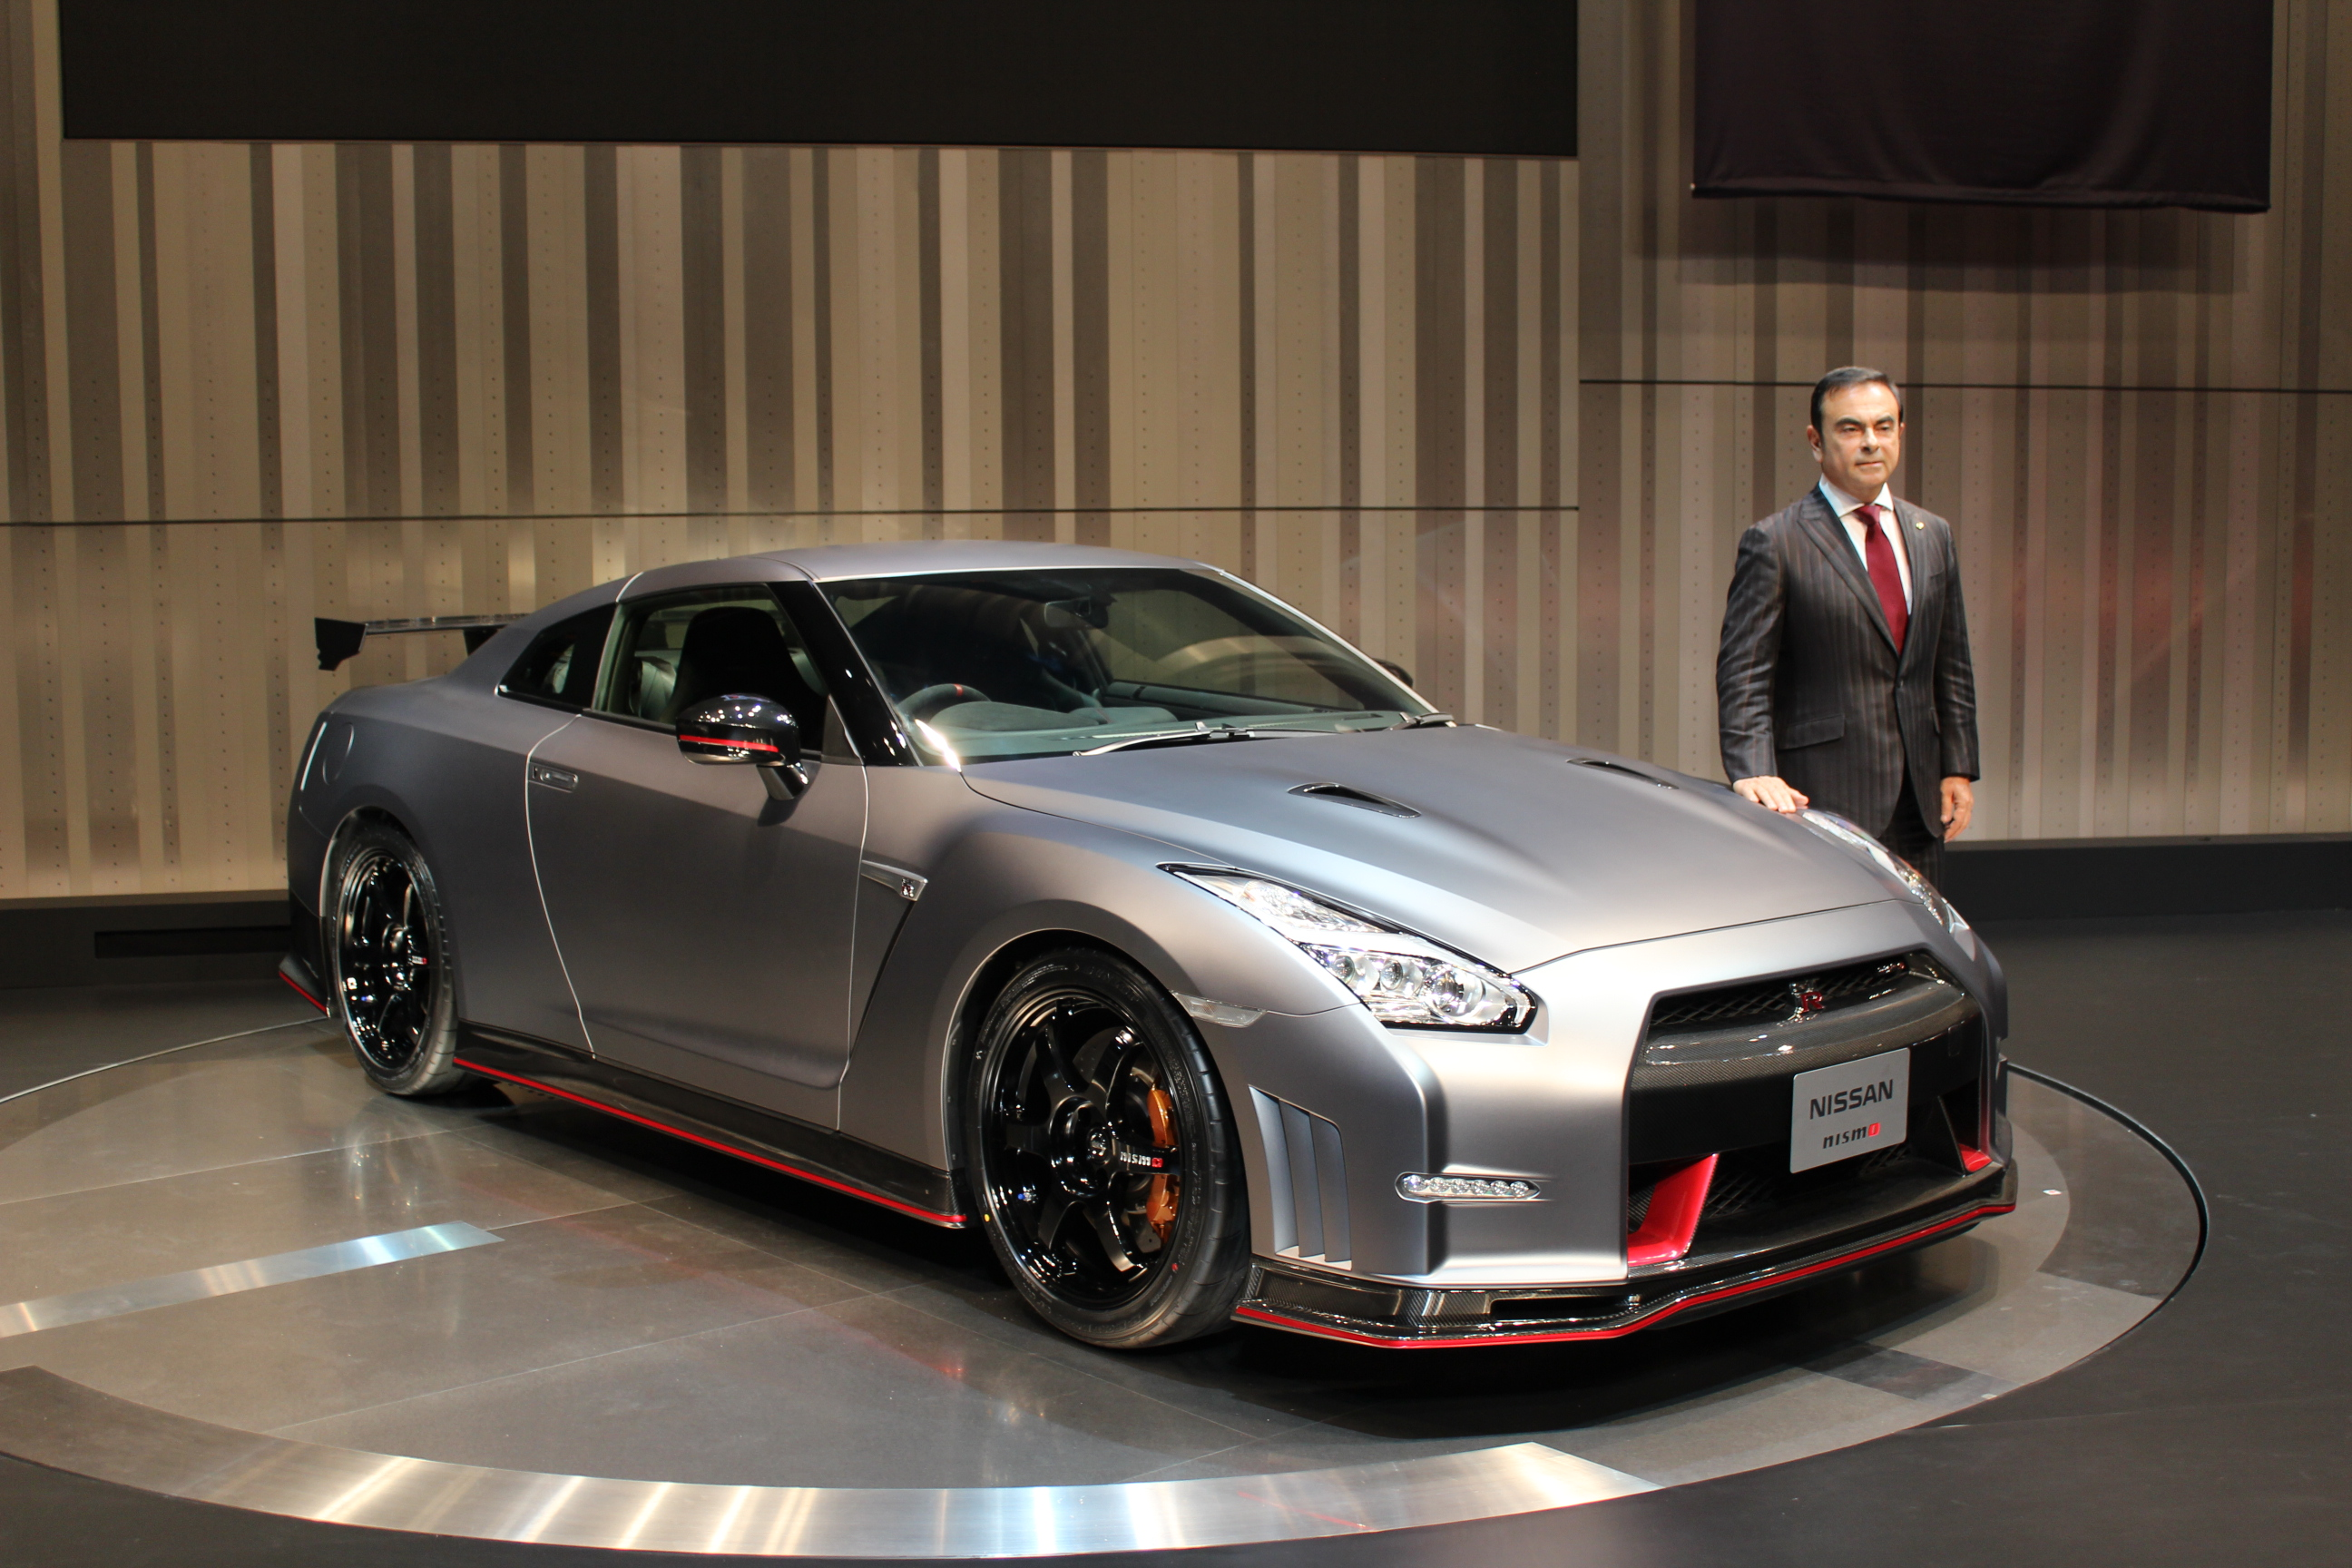 2015 nissan gt r nismo 2013 tokyo motor show live photos. Black Bedroom Furniture Sets. Home Design Ideas